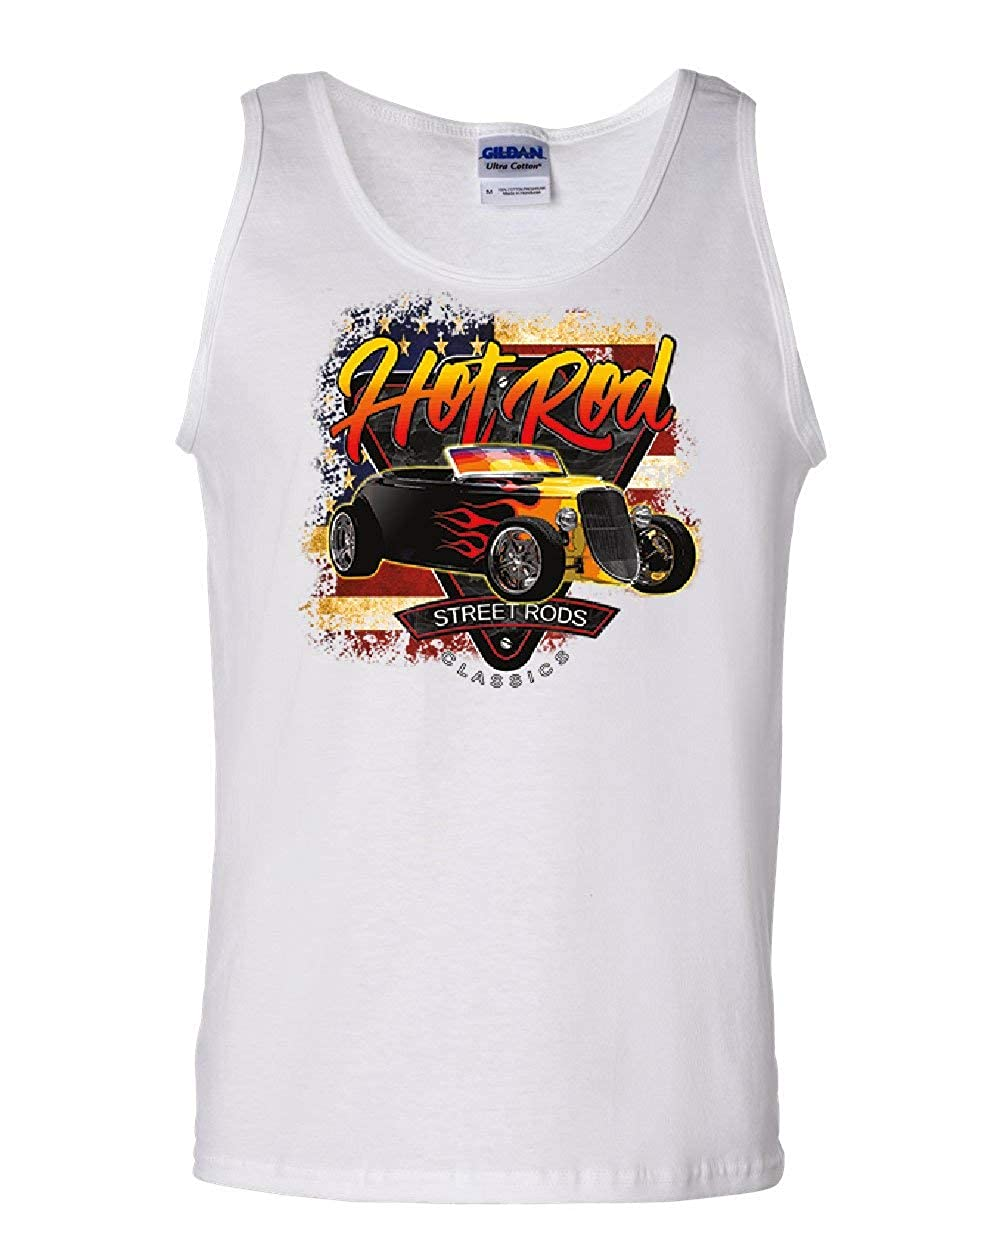 1933 Roadster Hot Rod American Flag Tank Top Street Rods Classics Sleeveless